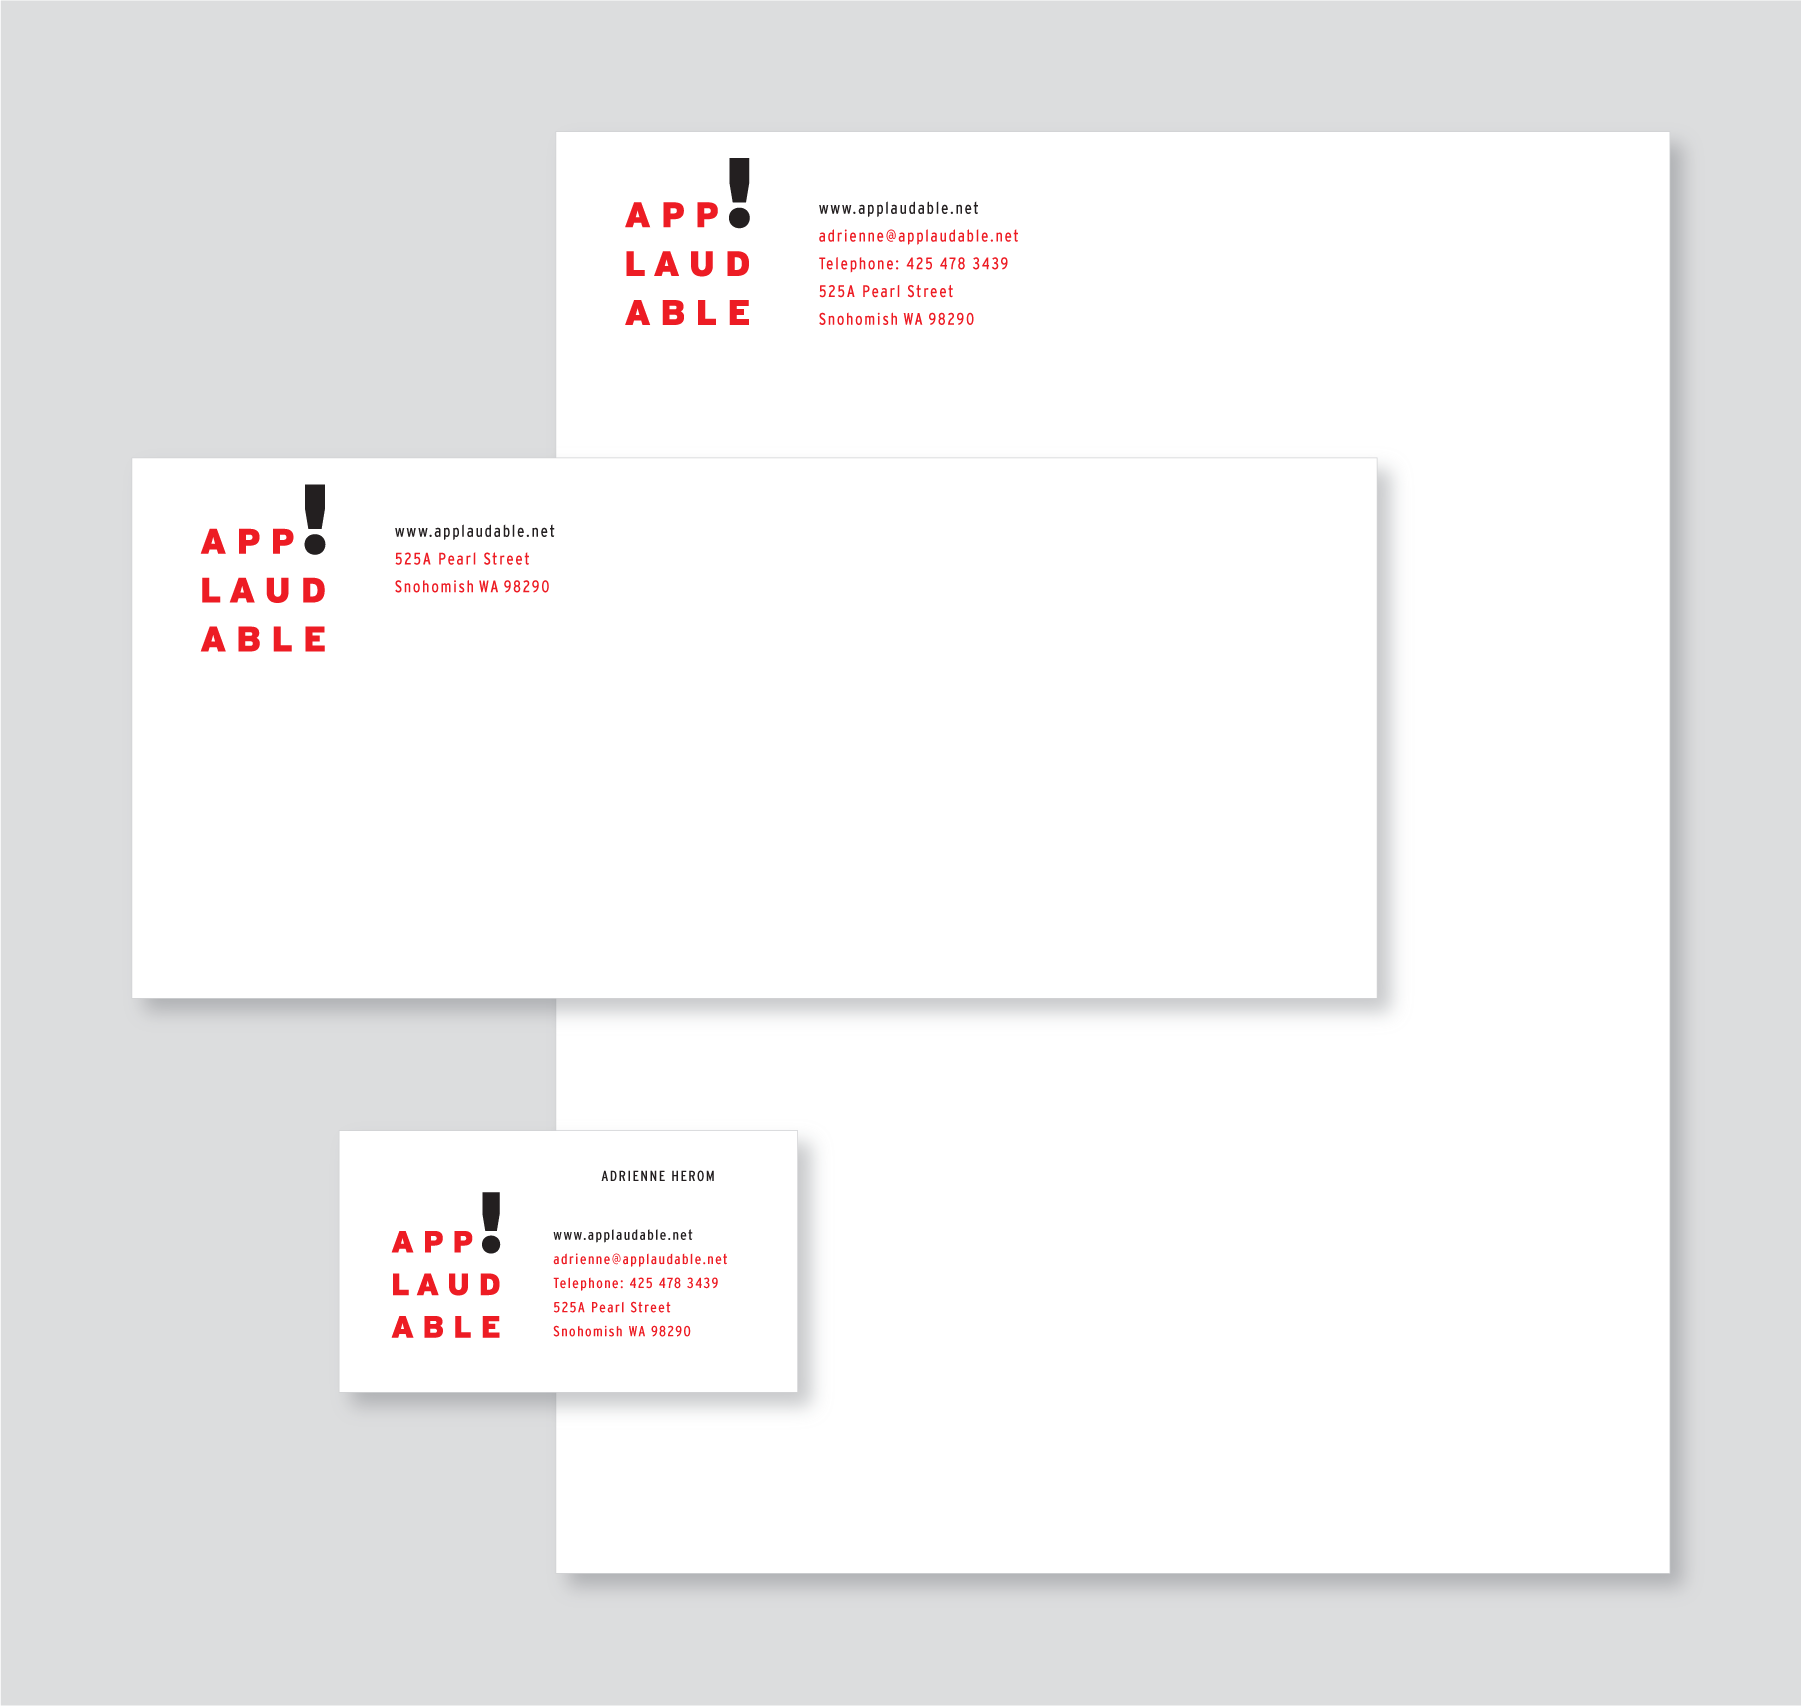 Stationery System Design, Applaudable